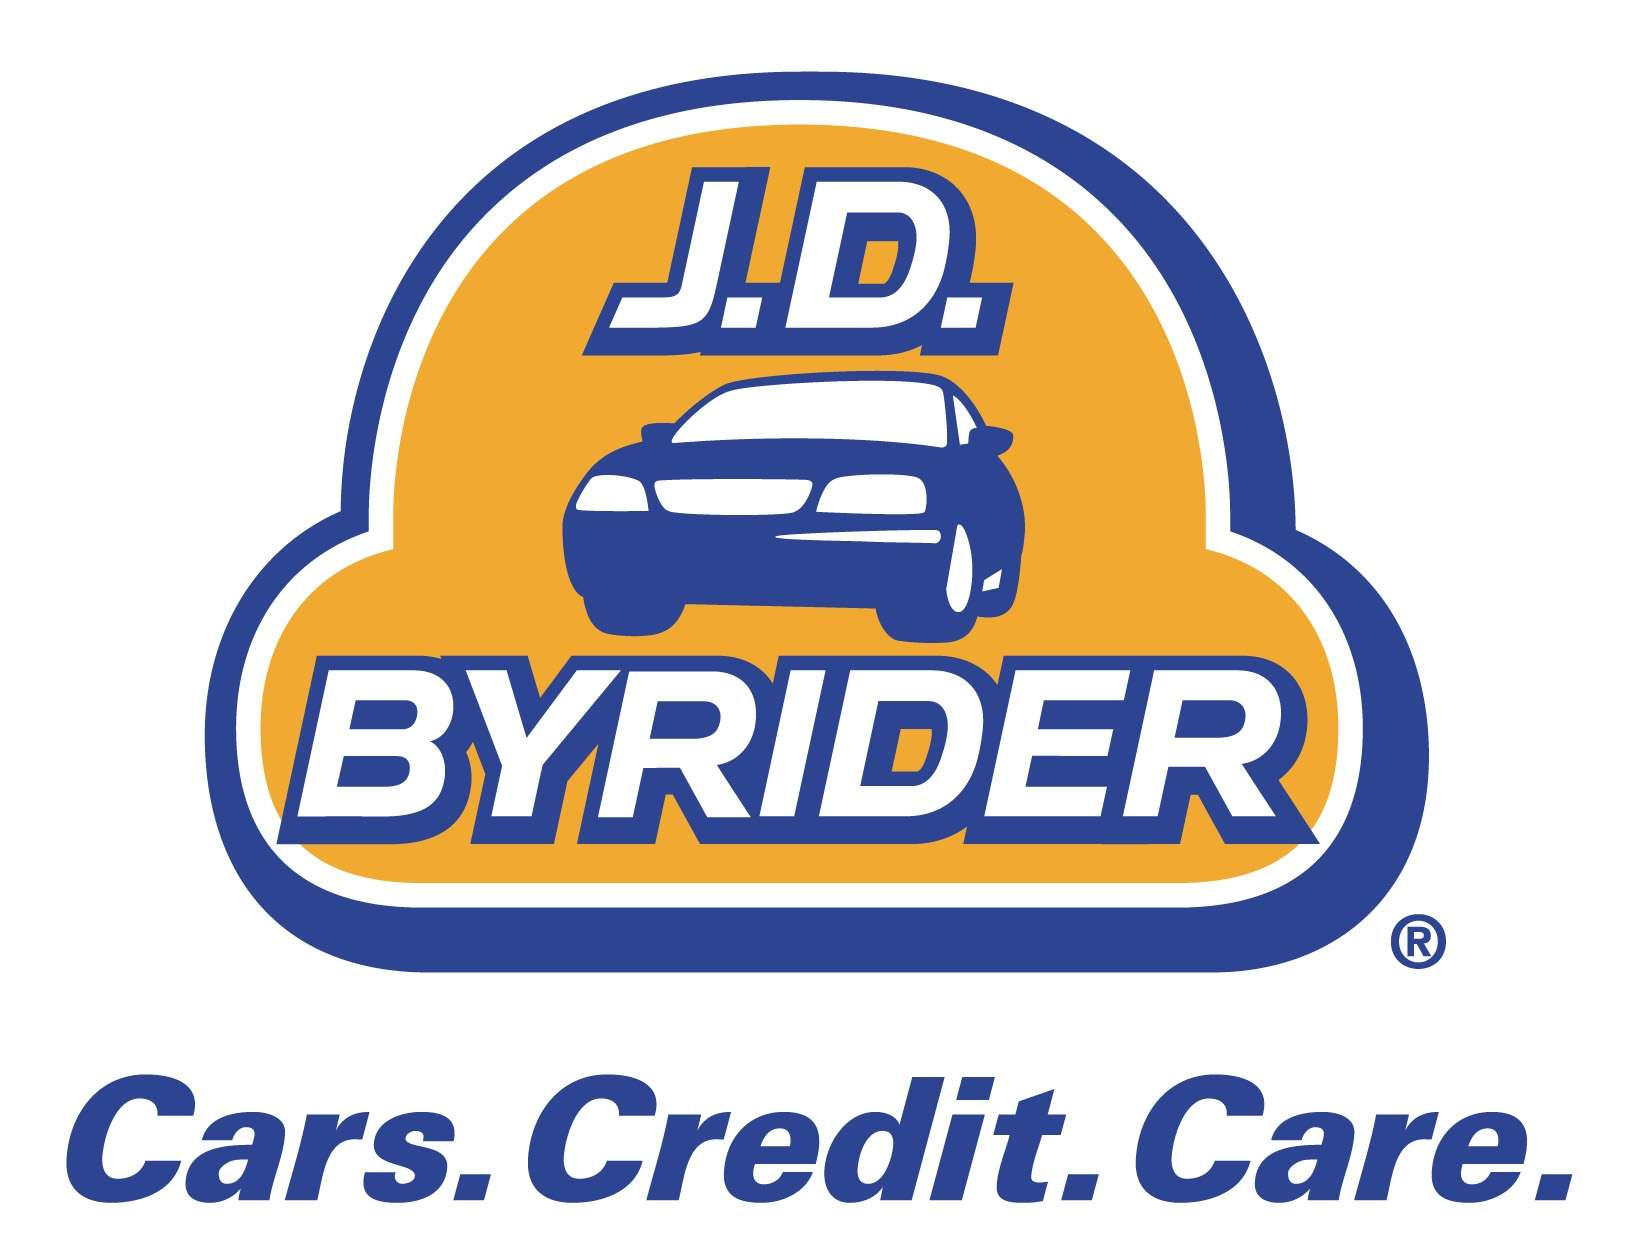 2012 JD BYRIDER